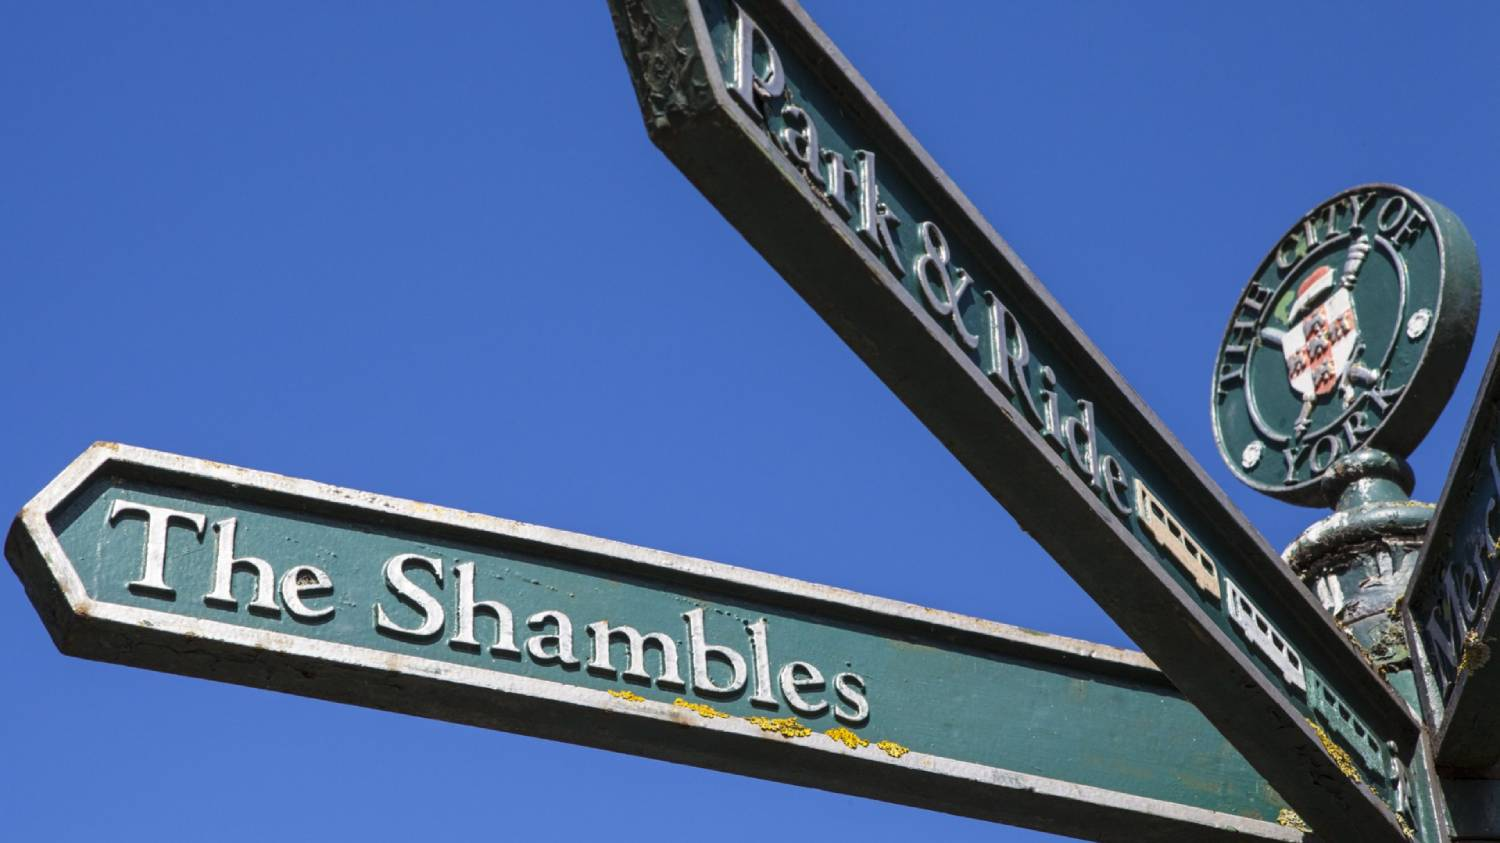 The Shambles - Things To Do In York